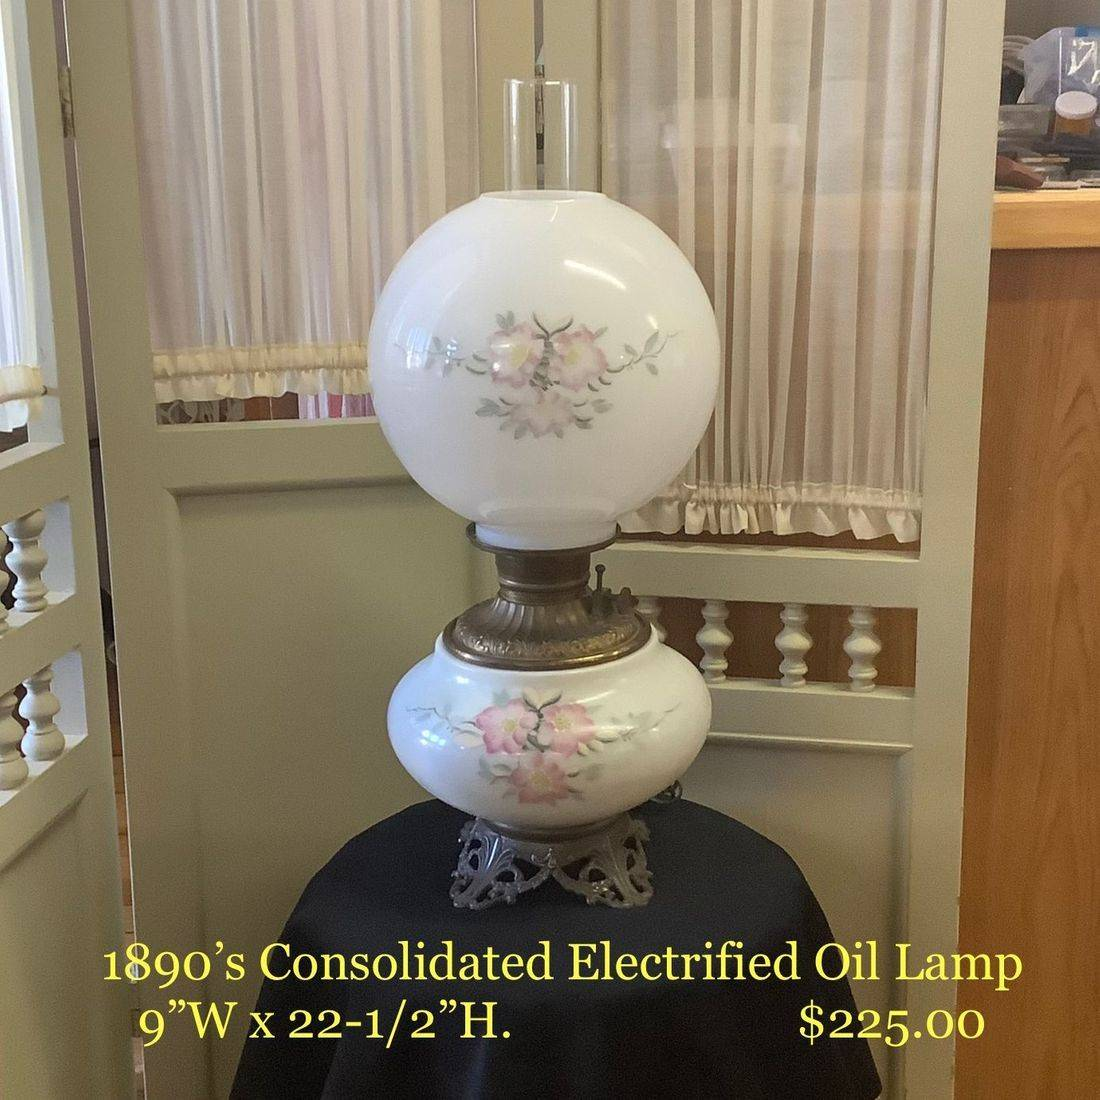 1890's Consolidated Electrified Oil Lamp  $225.00